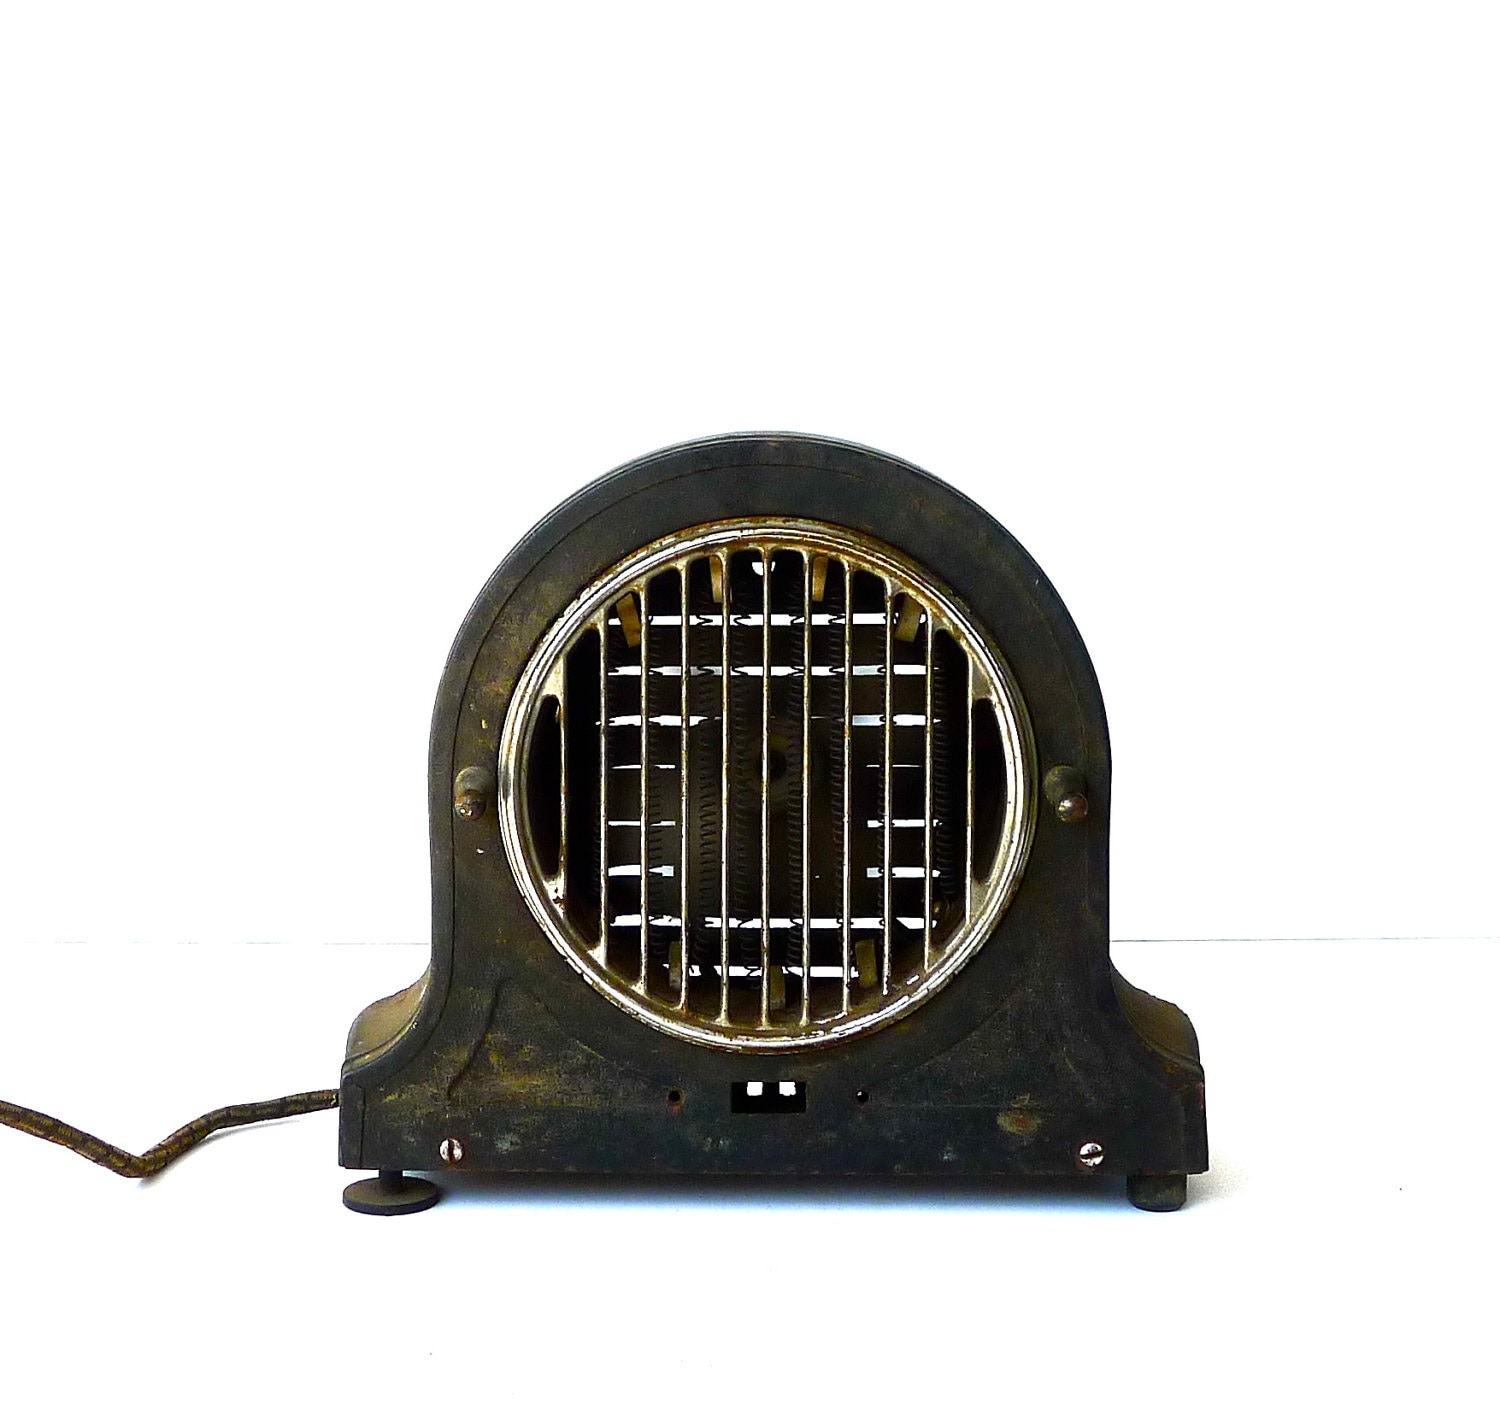 Art Deco Landers Frary & Clark Universal Electric Heater Working - marybethhale